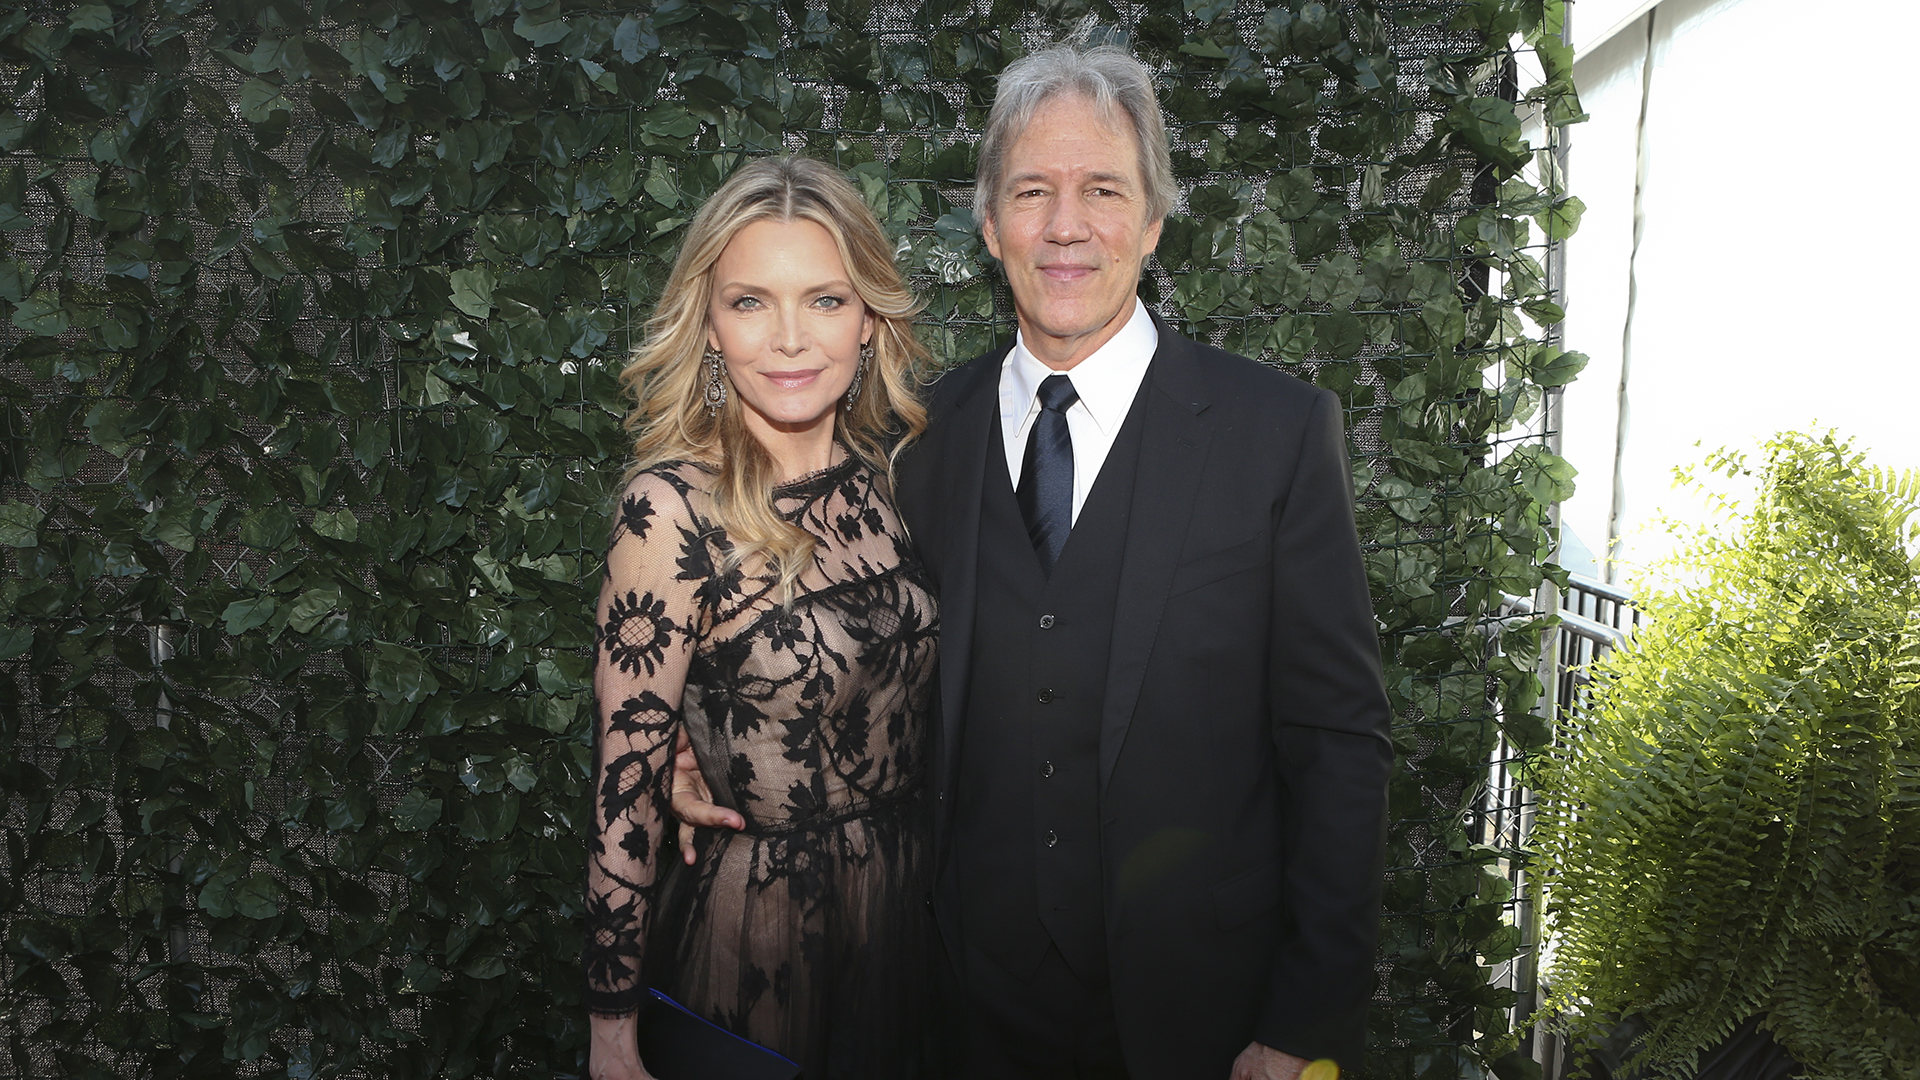 Michelle Pfeiffer from The Wizard Of Lies and producer David E. Kelley